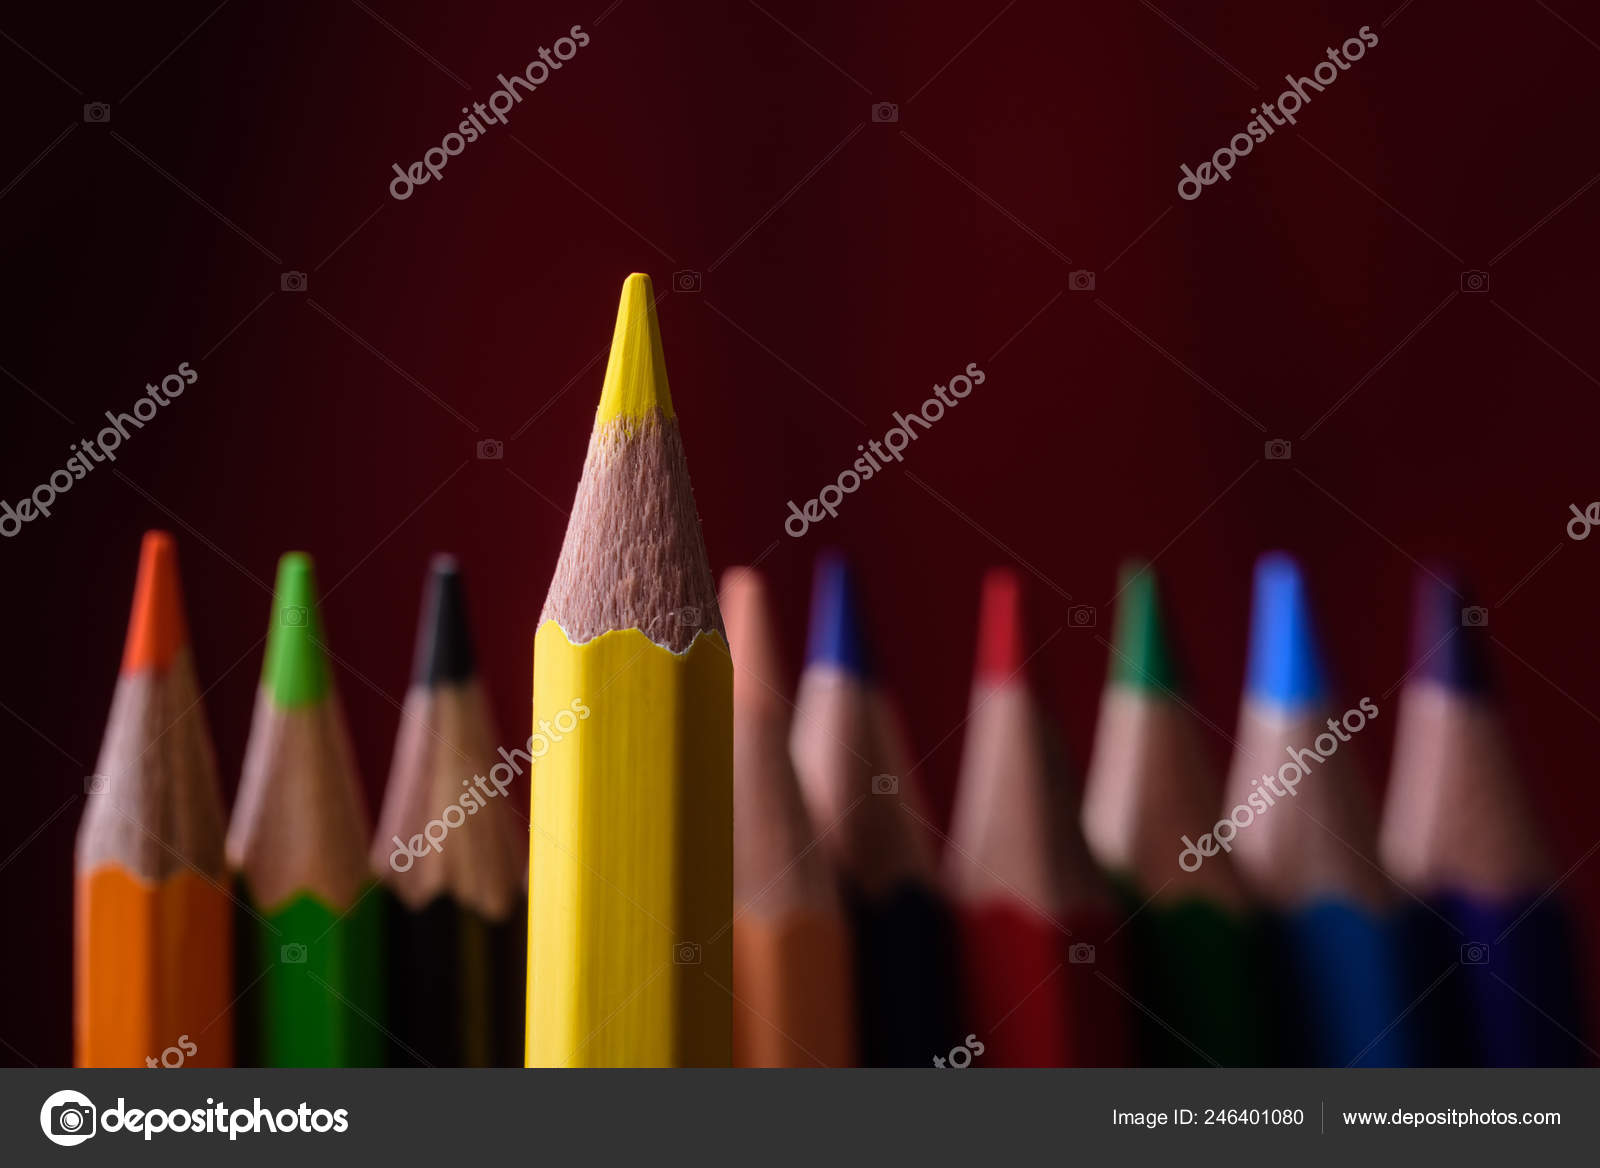 yellow pencil leader other pencils red background concept business stock photo image by c eduardhapich 246401080